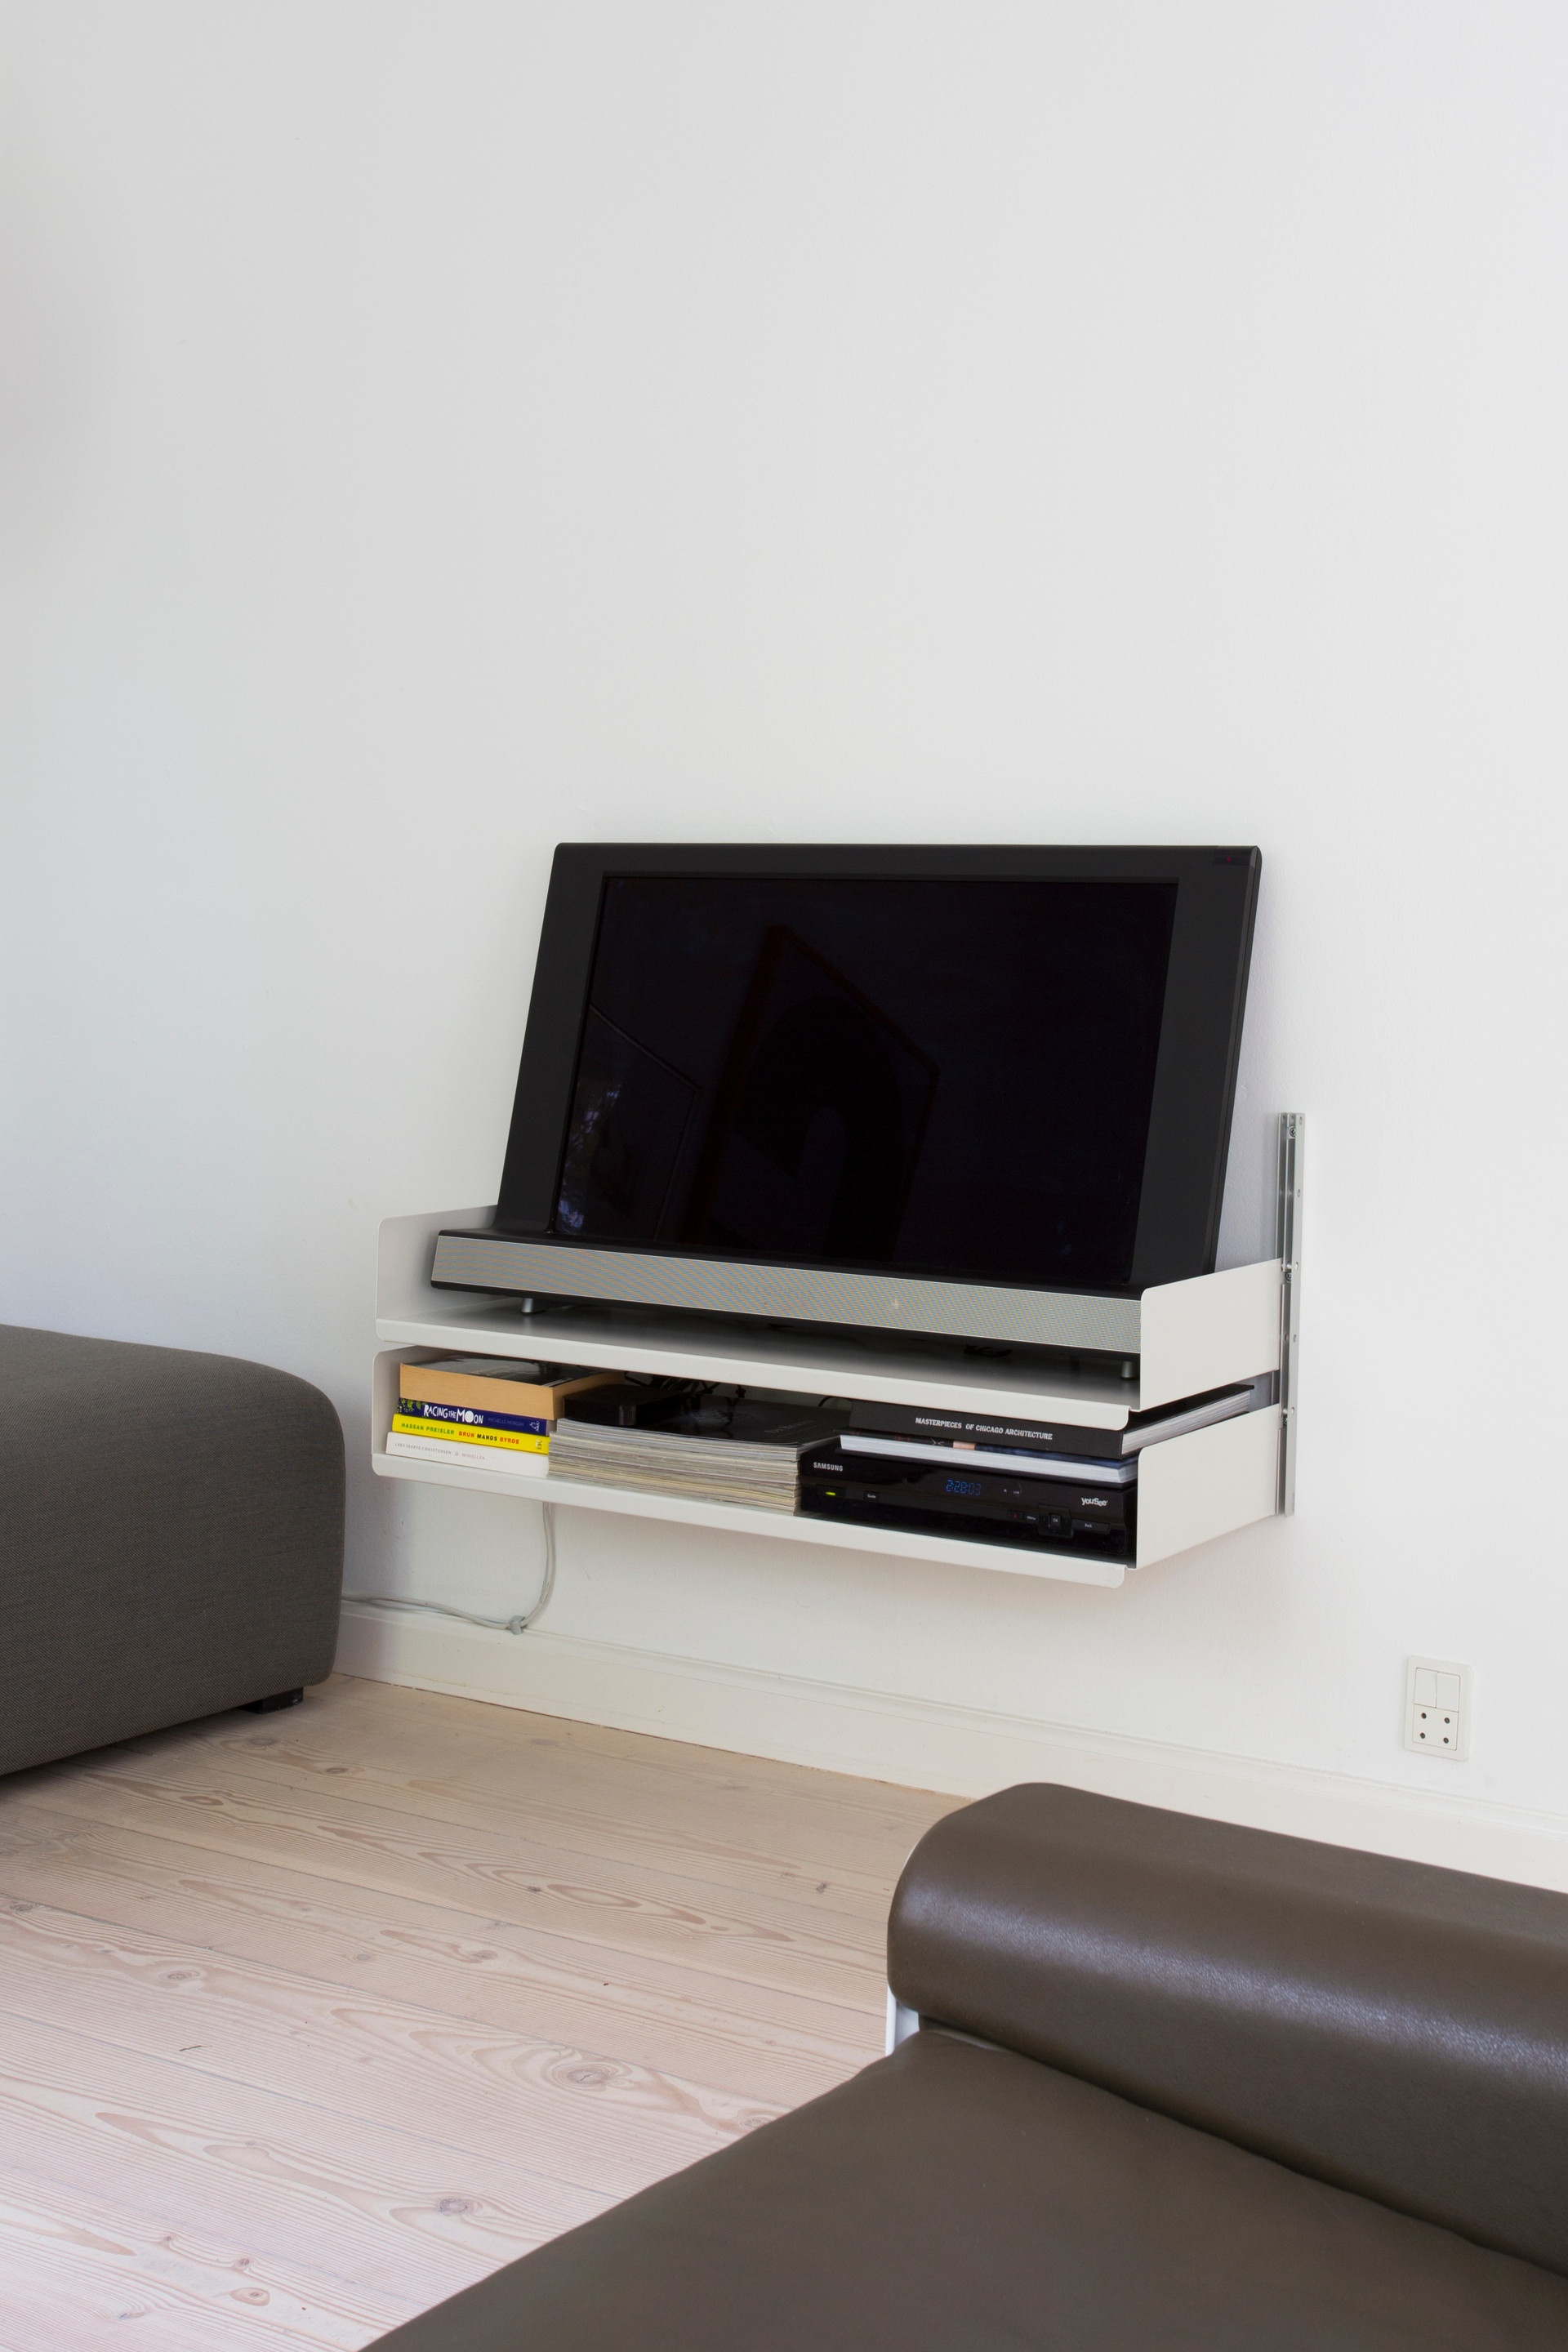 Simply two shelves on two E-Tracks: an economical TV storage solution. Yours for €298 inc VAT